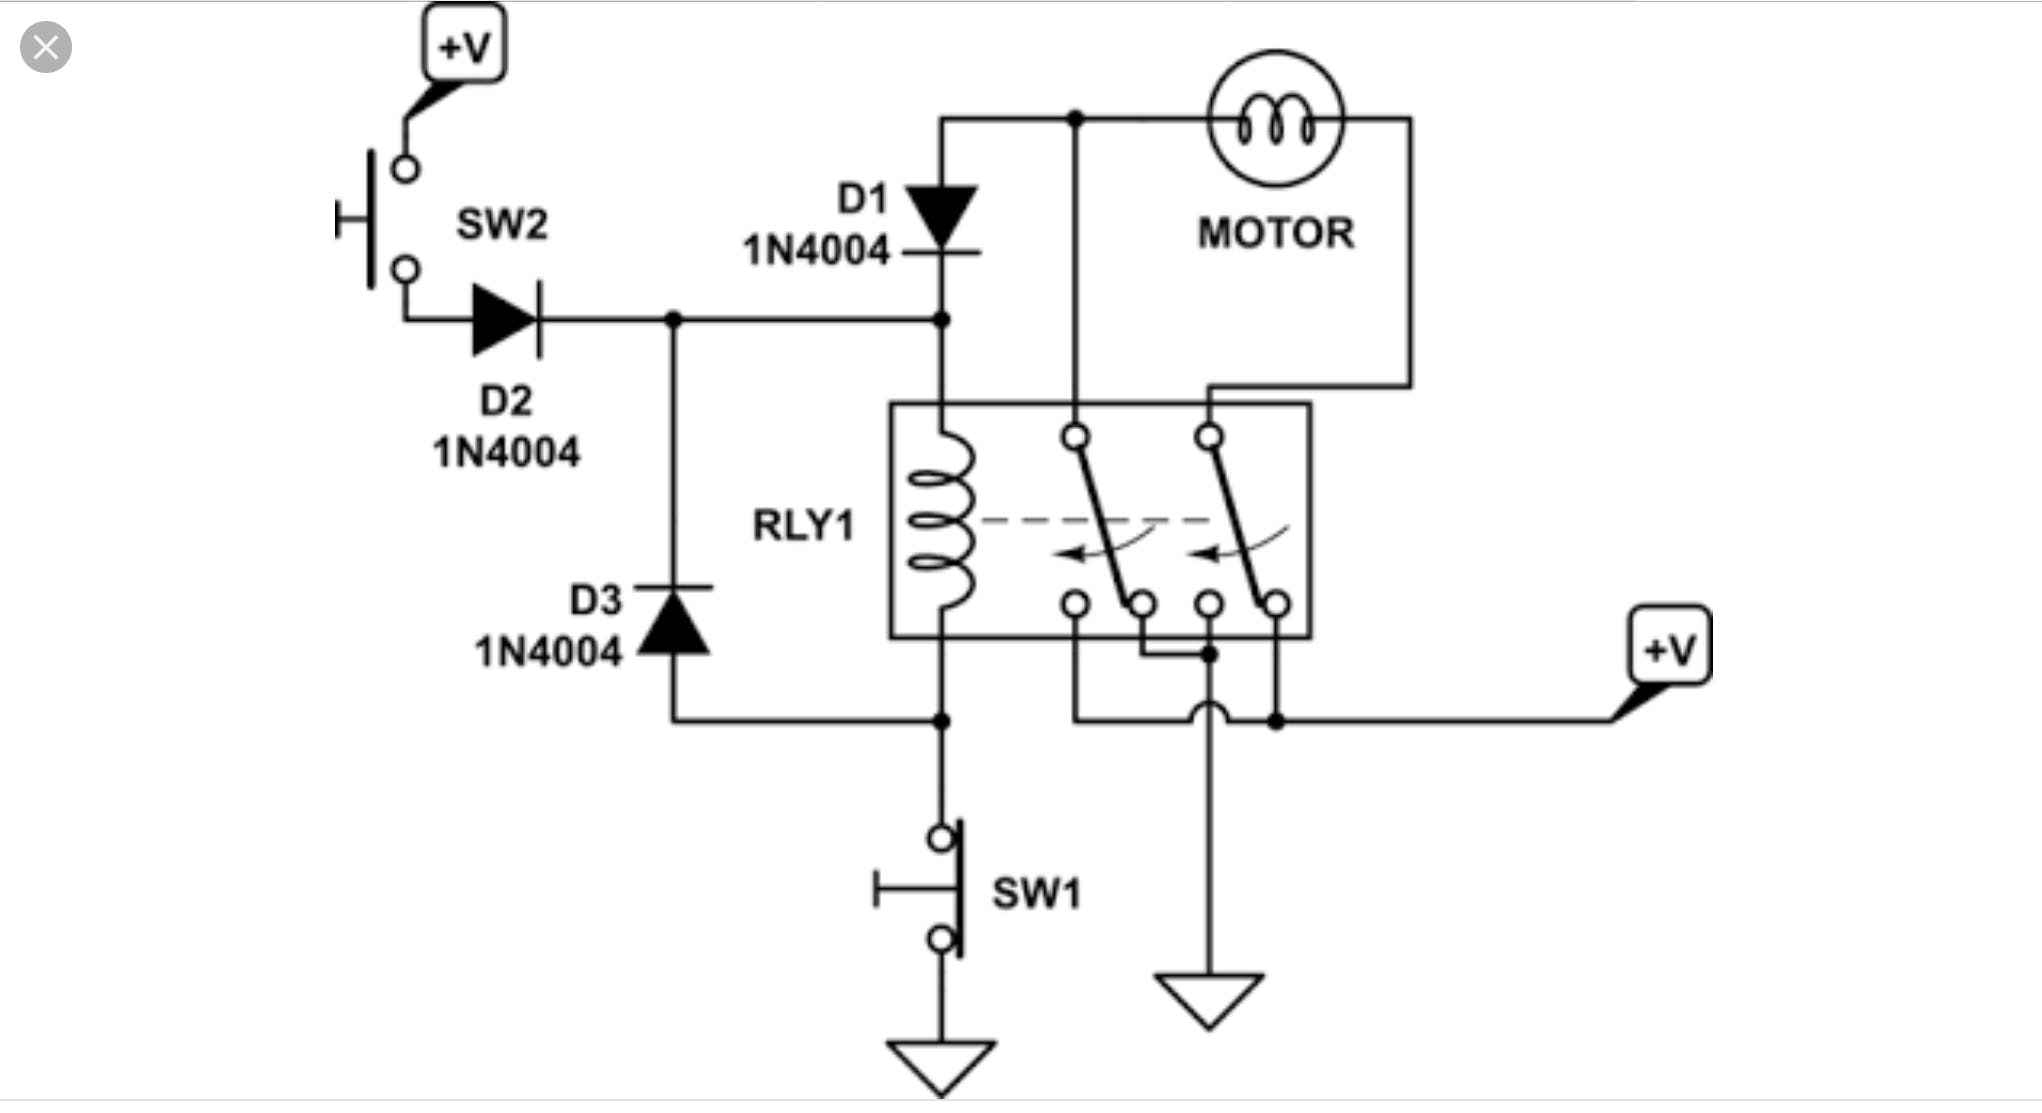 basic schematic Of the Control Circuit for 1 Wheel